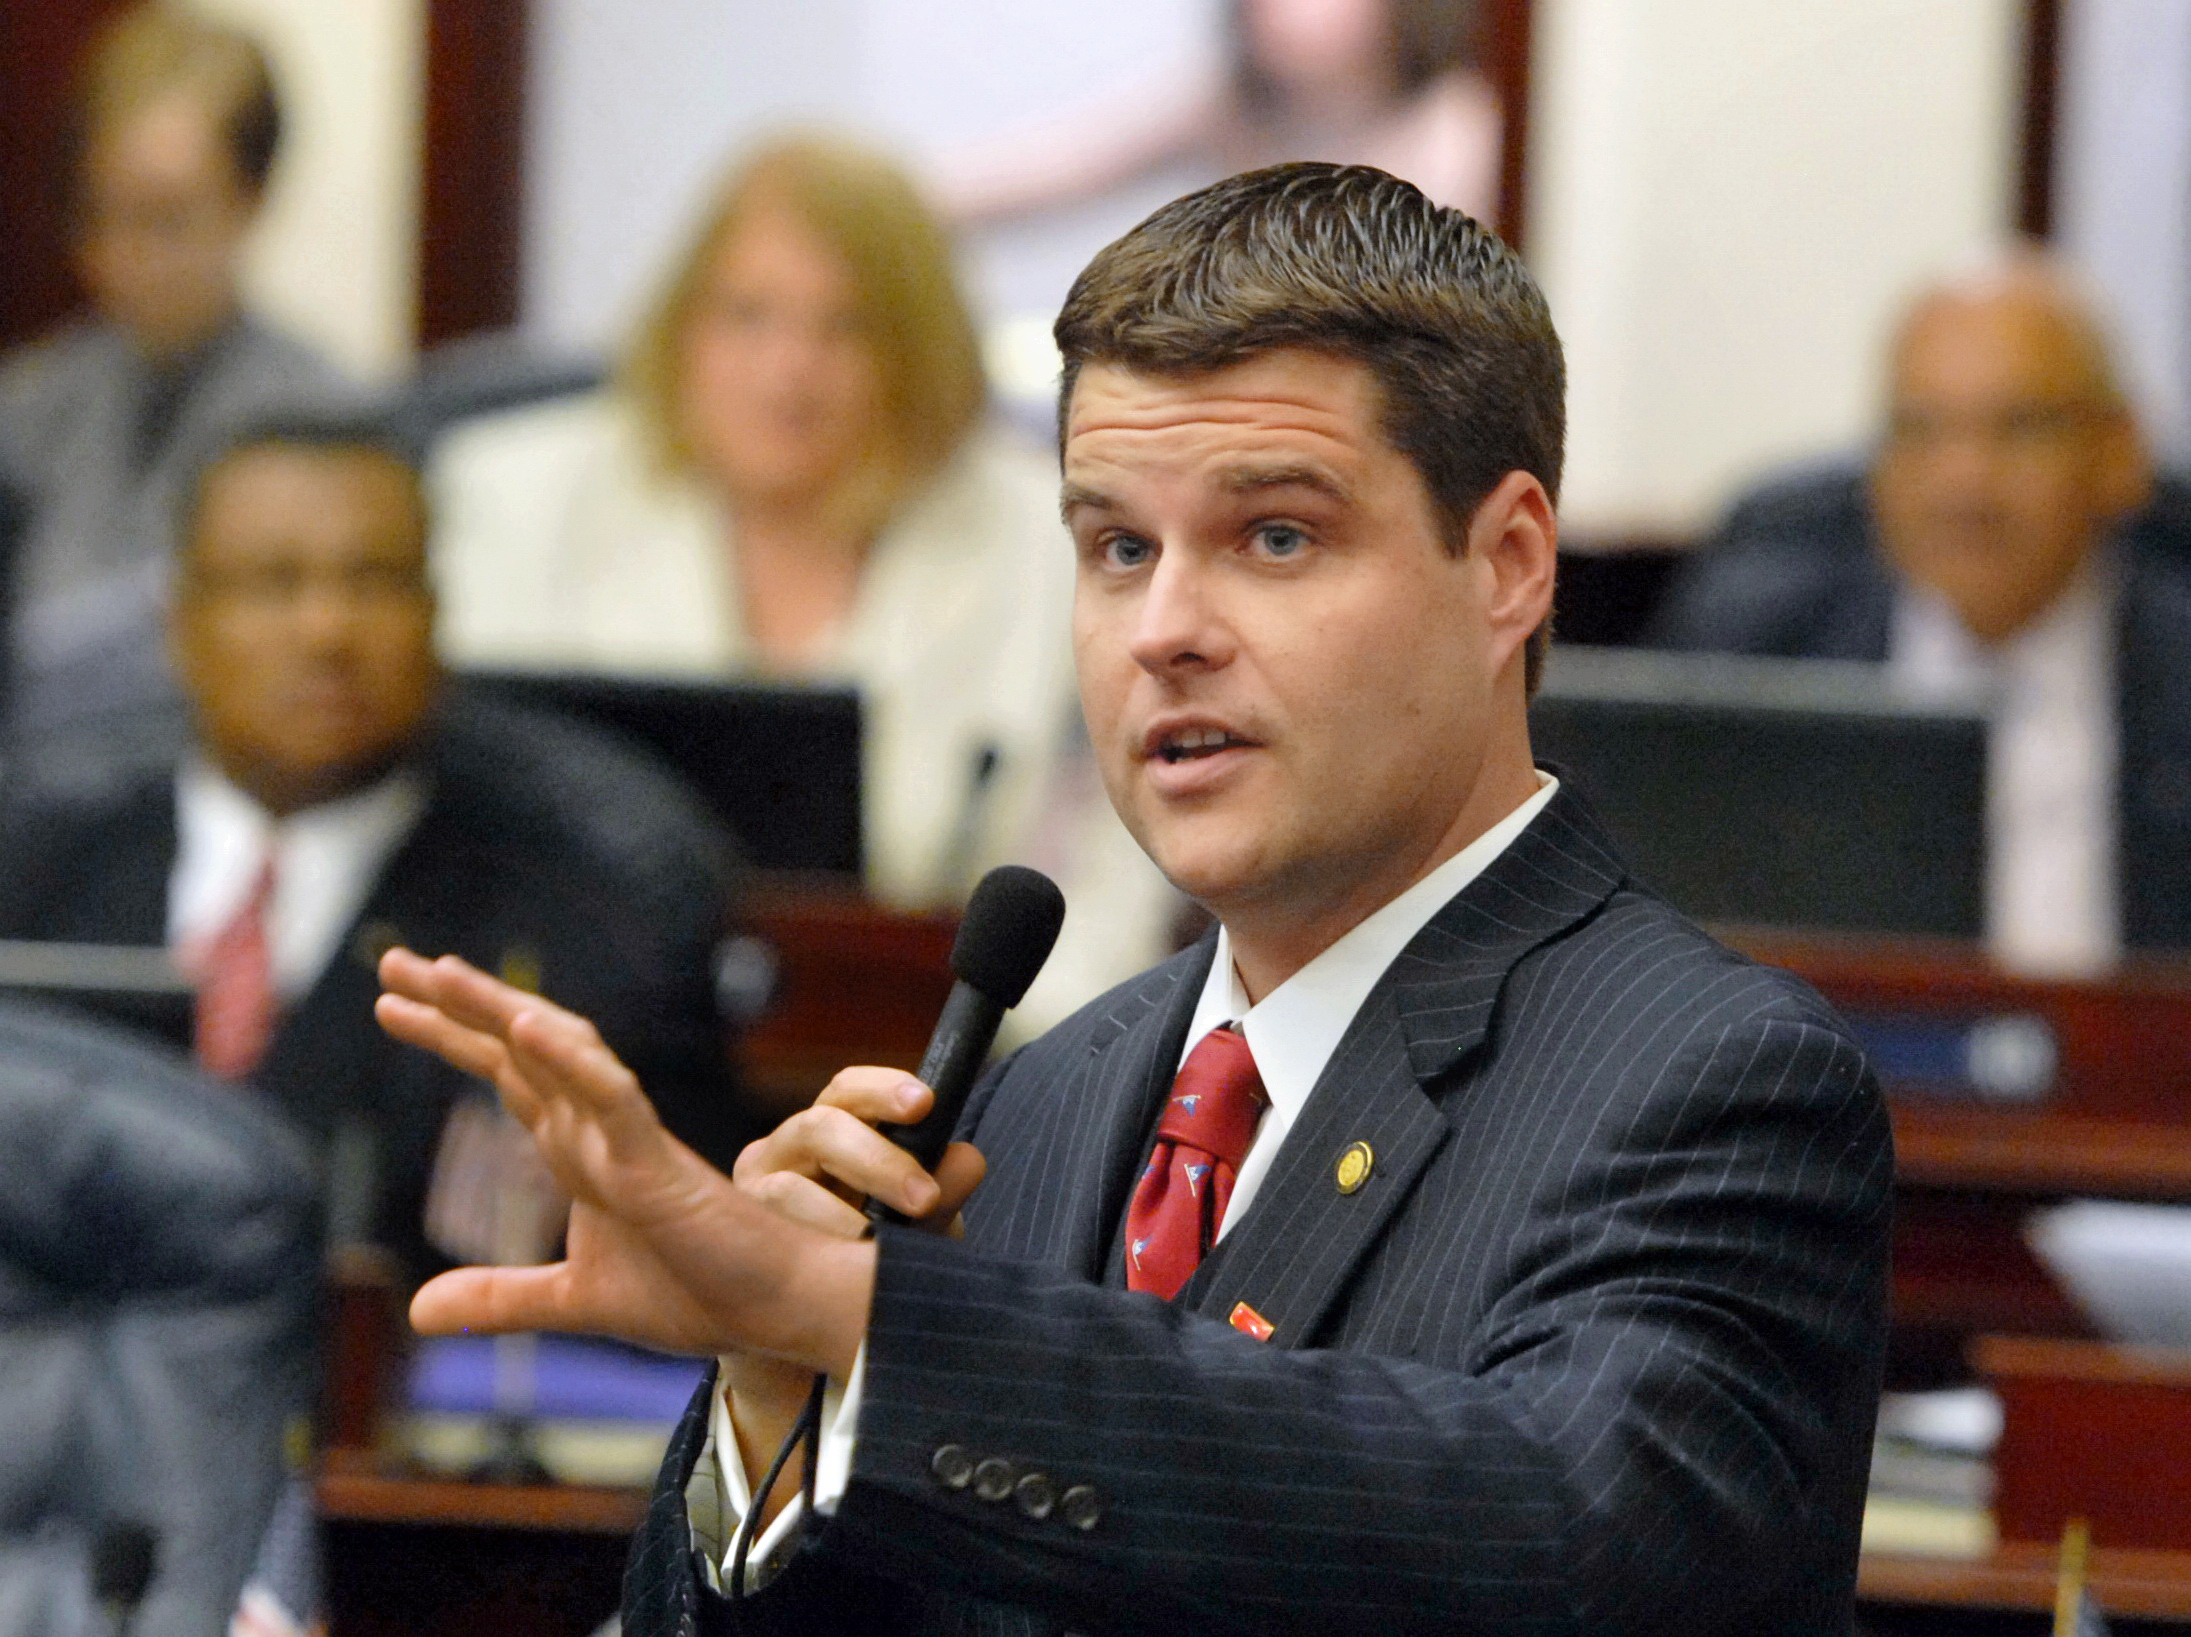 Matt Gaetz Consulted Sean Hannity About Tweet Threatening to Reveal Dirt on Michael Cohen